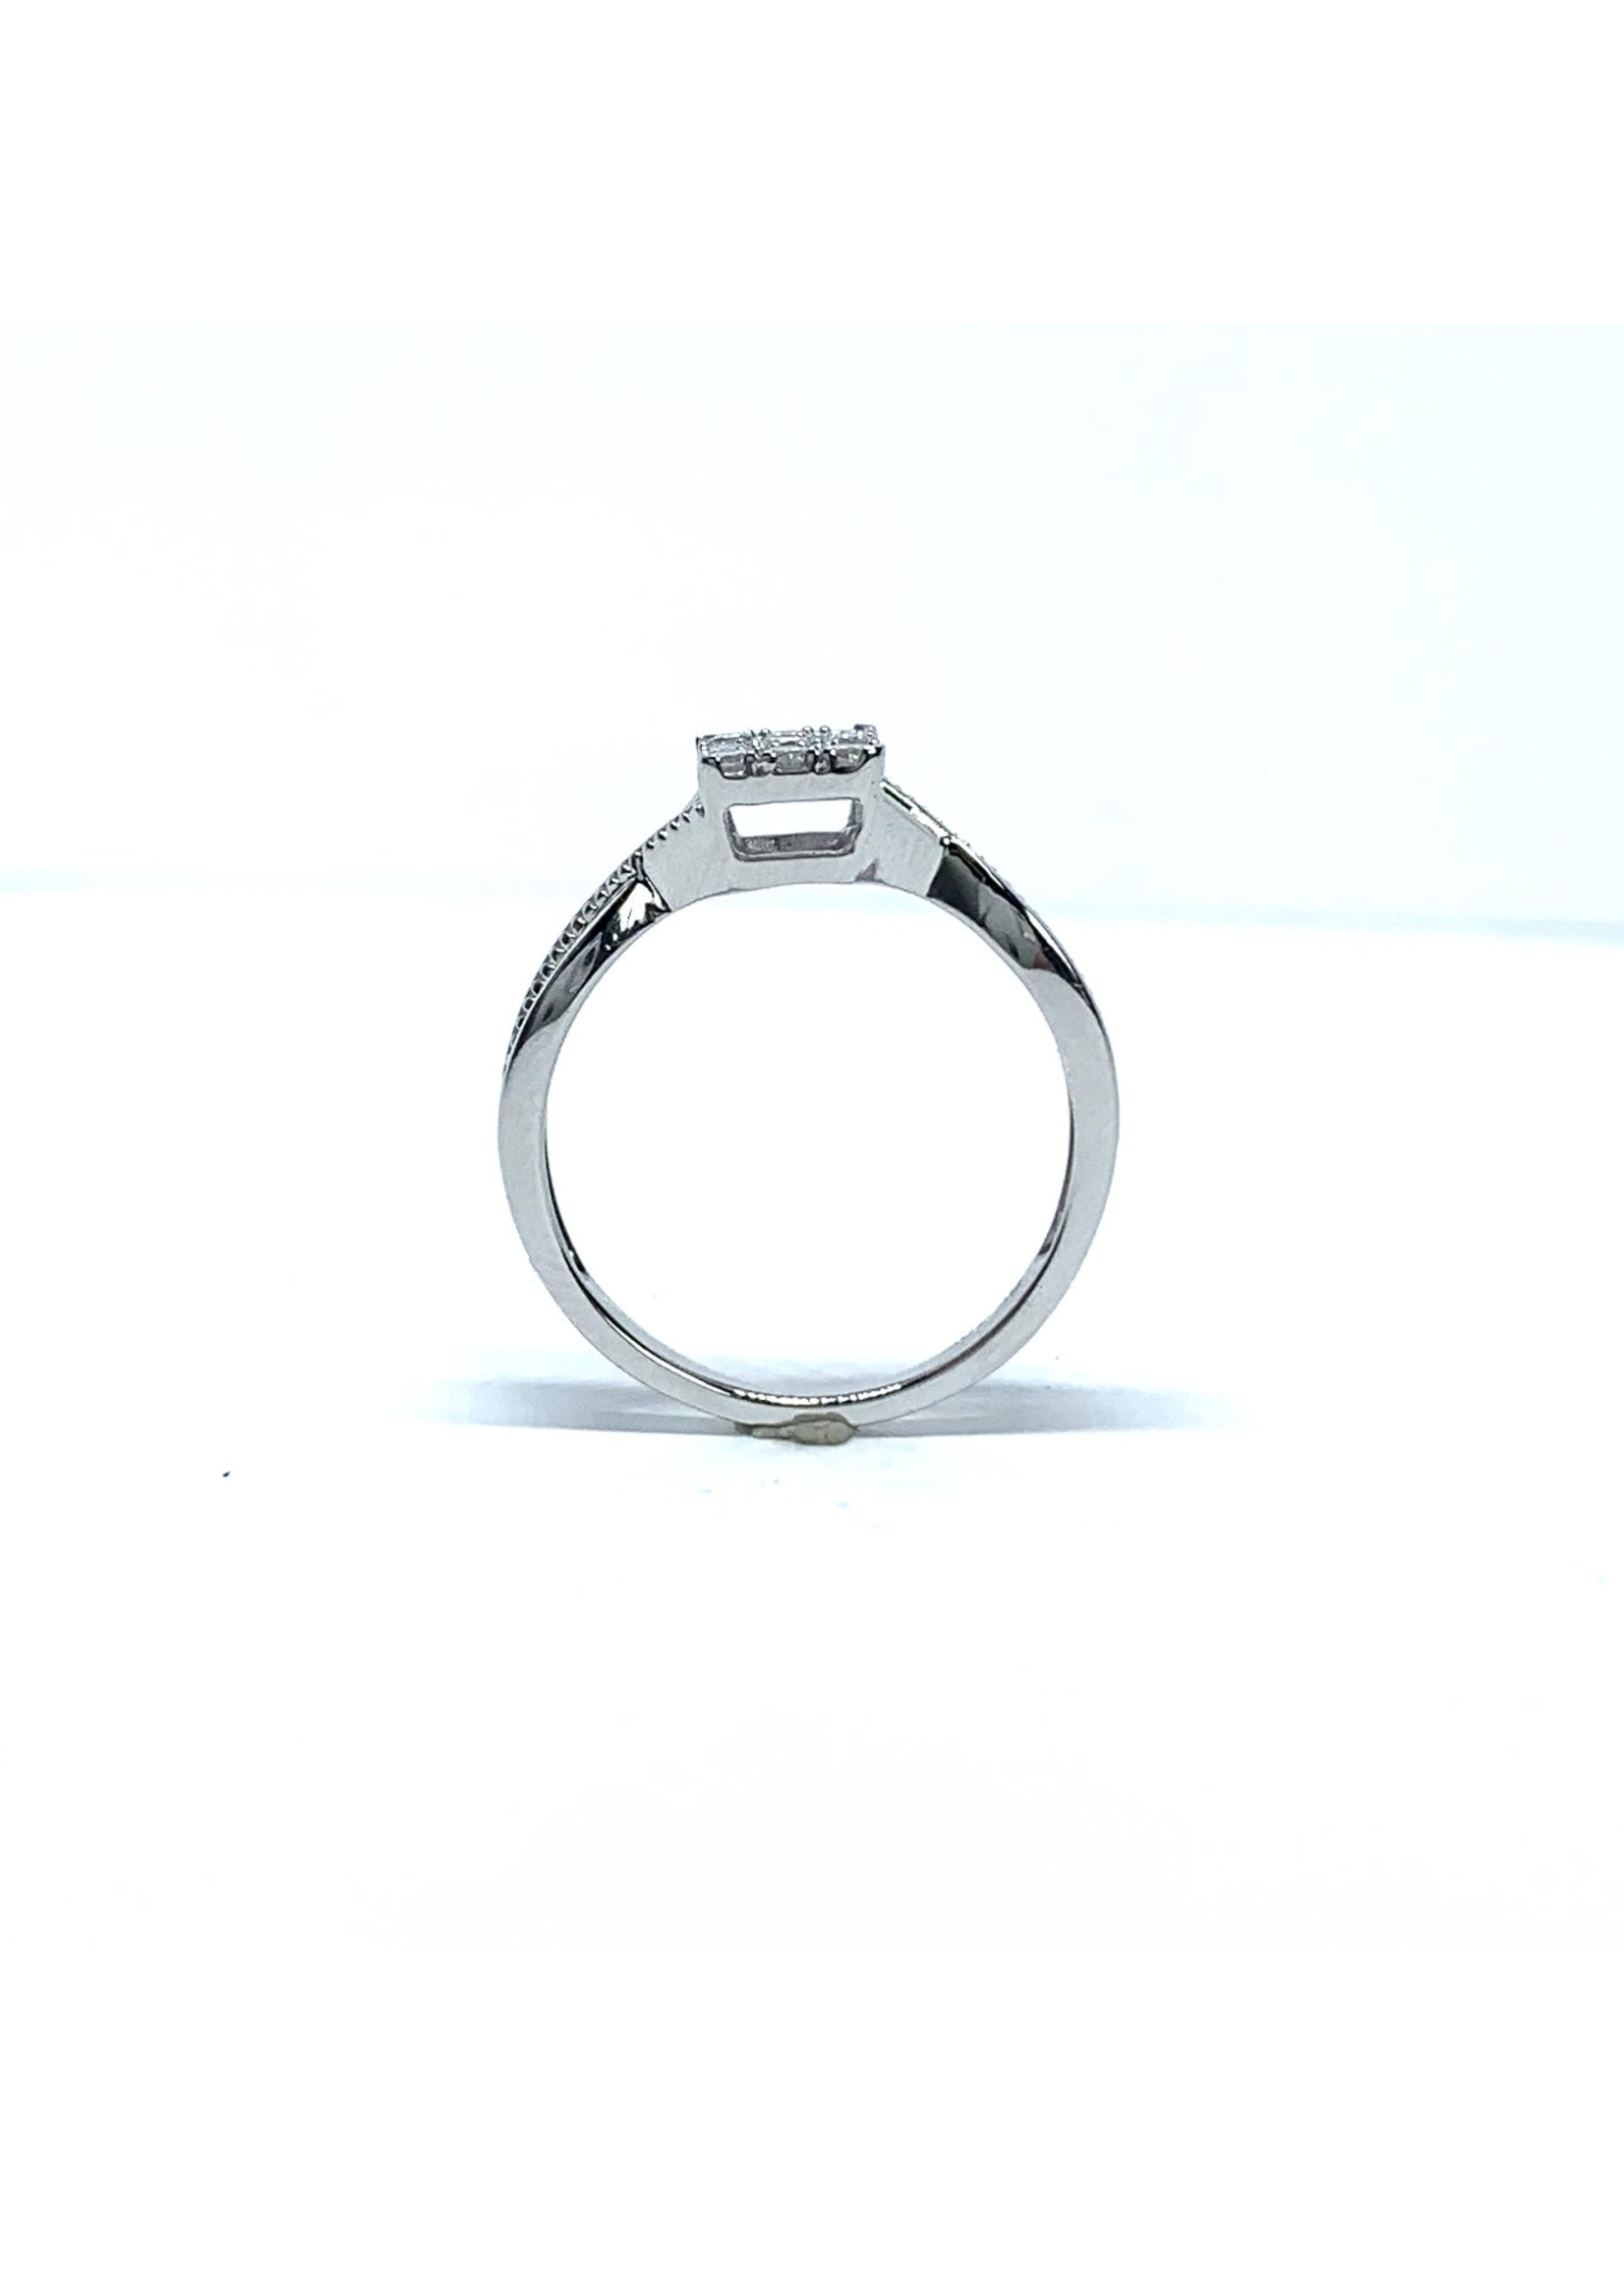 Bague de fiançailles princesse illusion Or blanc 10K avec diamants